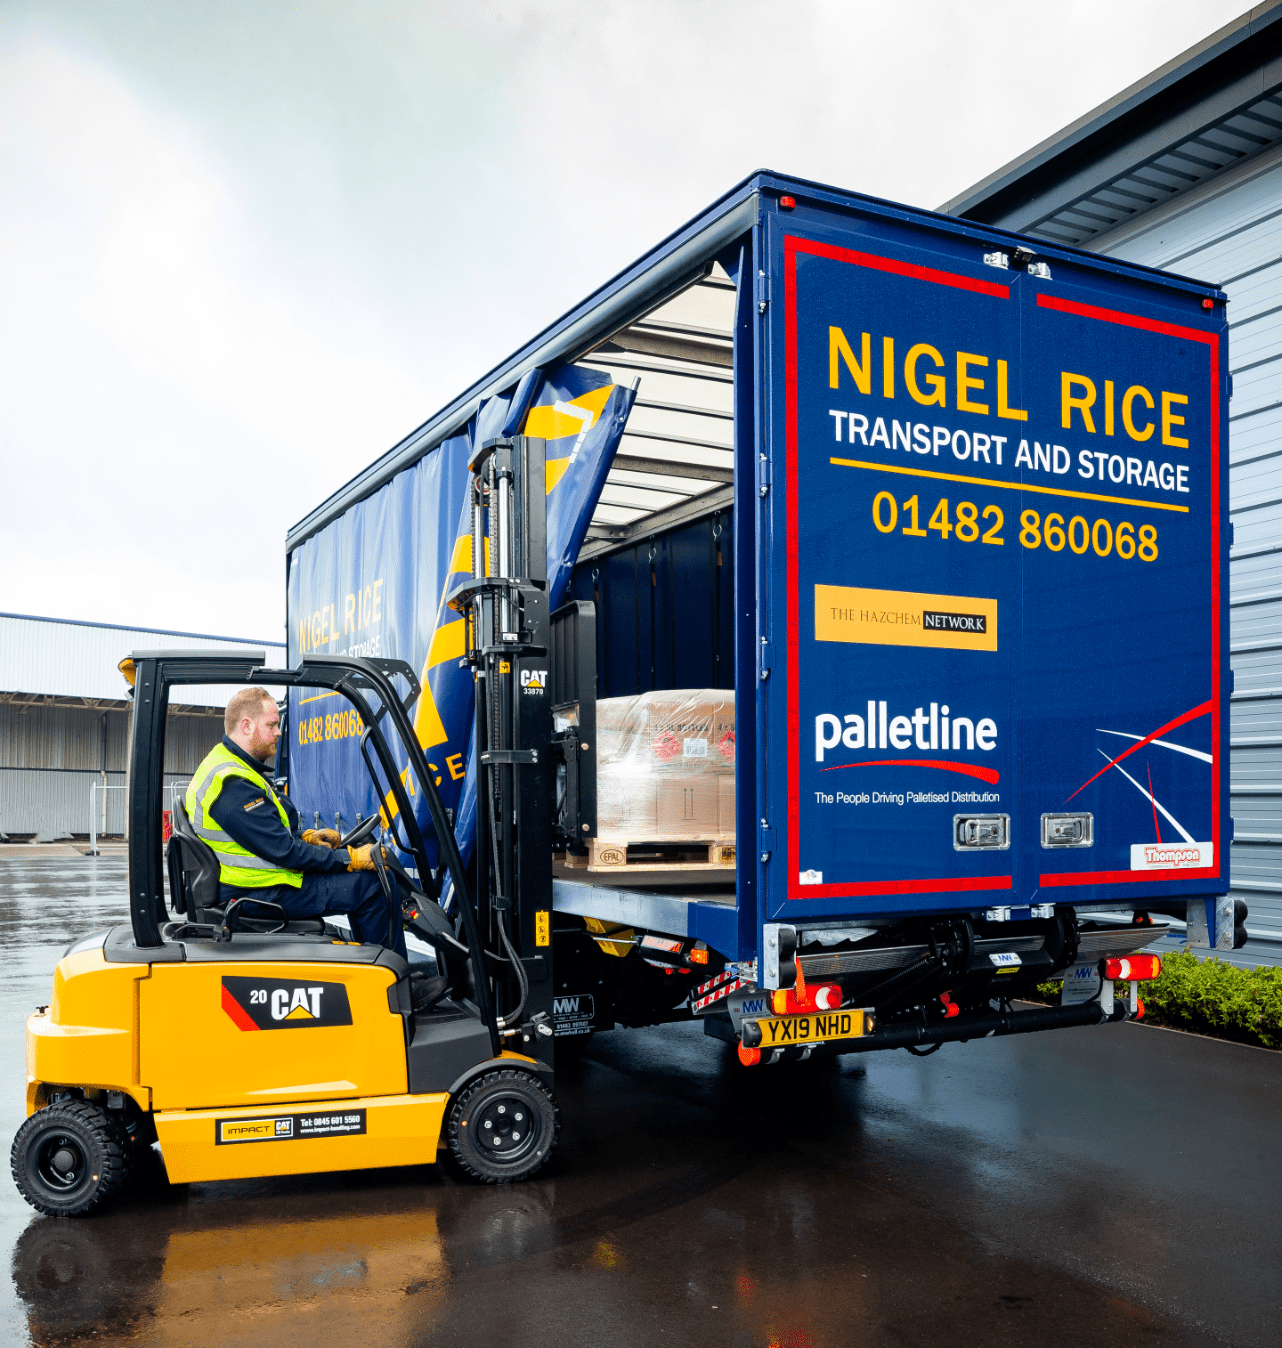 haulage hull, transport and distribution hull, pallet delivery hull